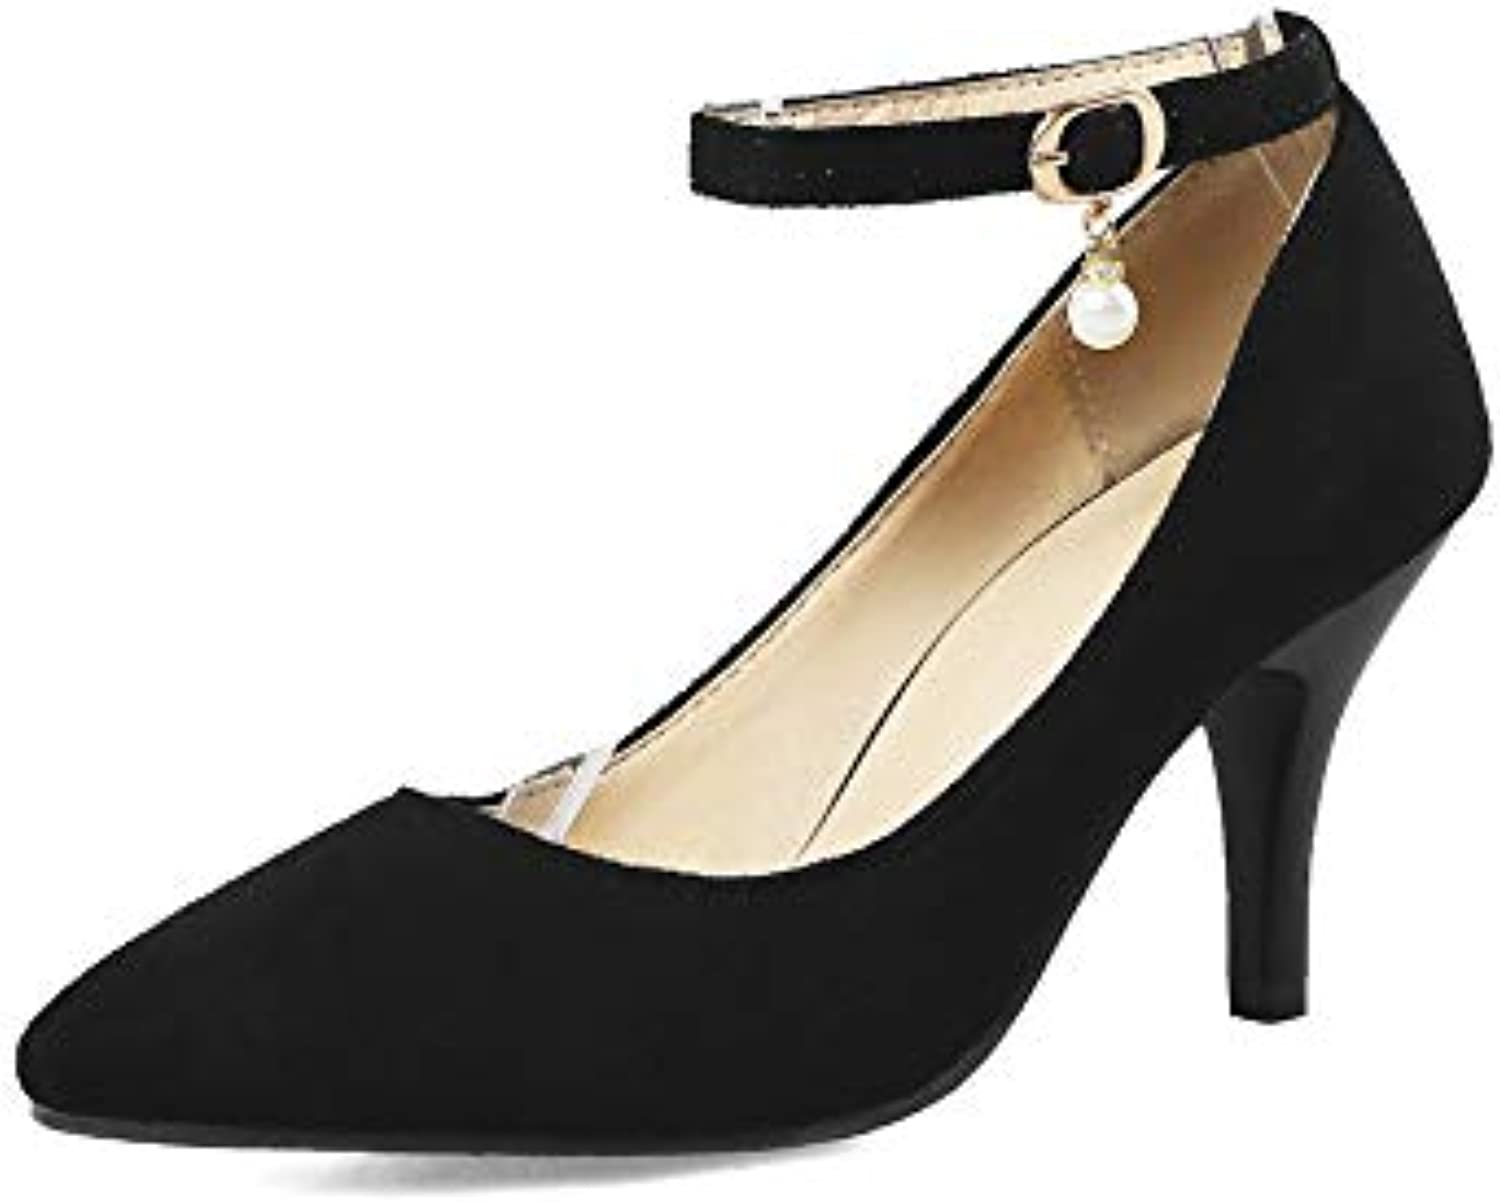 Wouomo Wouomo Wouomo Stiletto High Heels Pointed Toe Shallow Mouth scarpe | In Linea Outlet Store  | Gentiluomo/Signora Scarpa  c29d0d